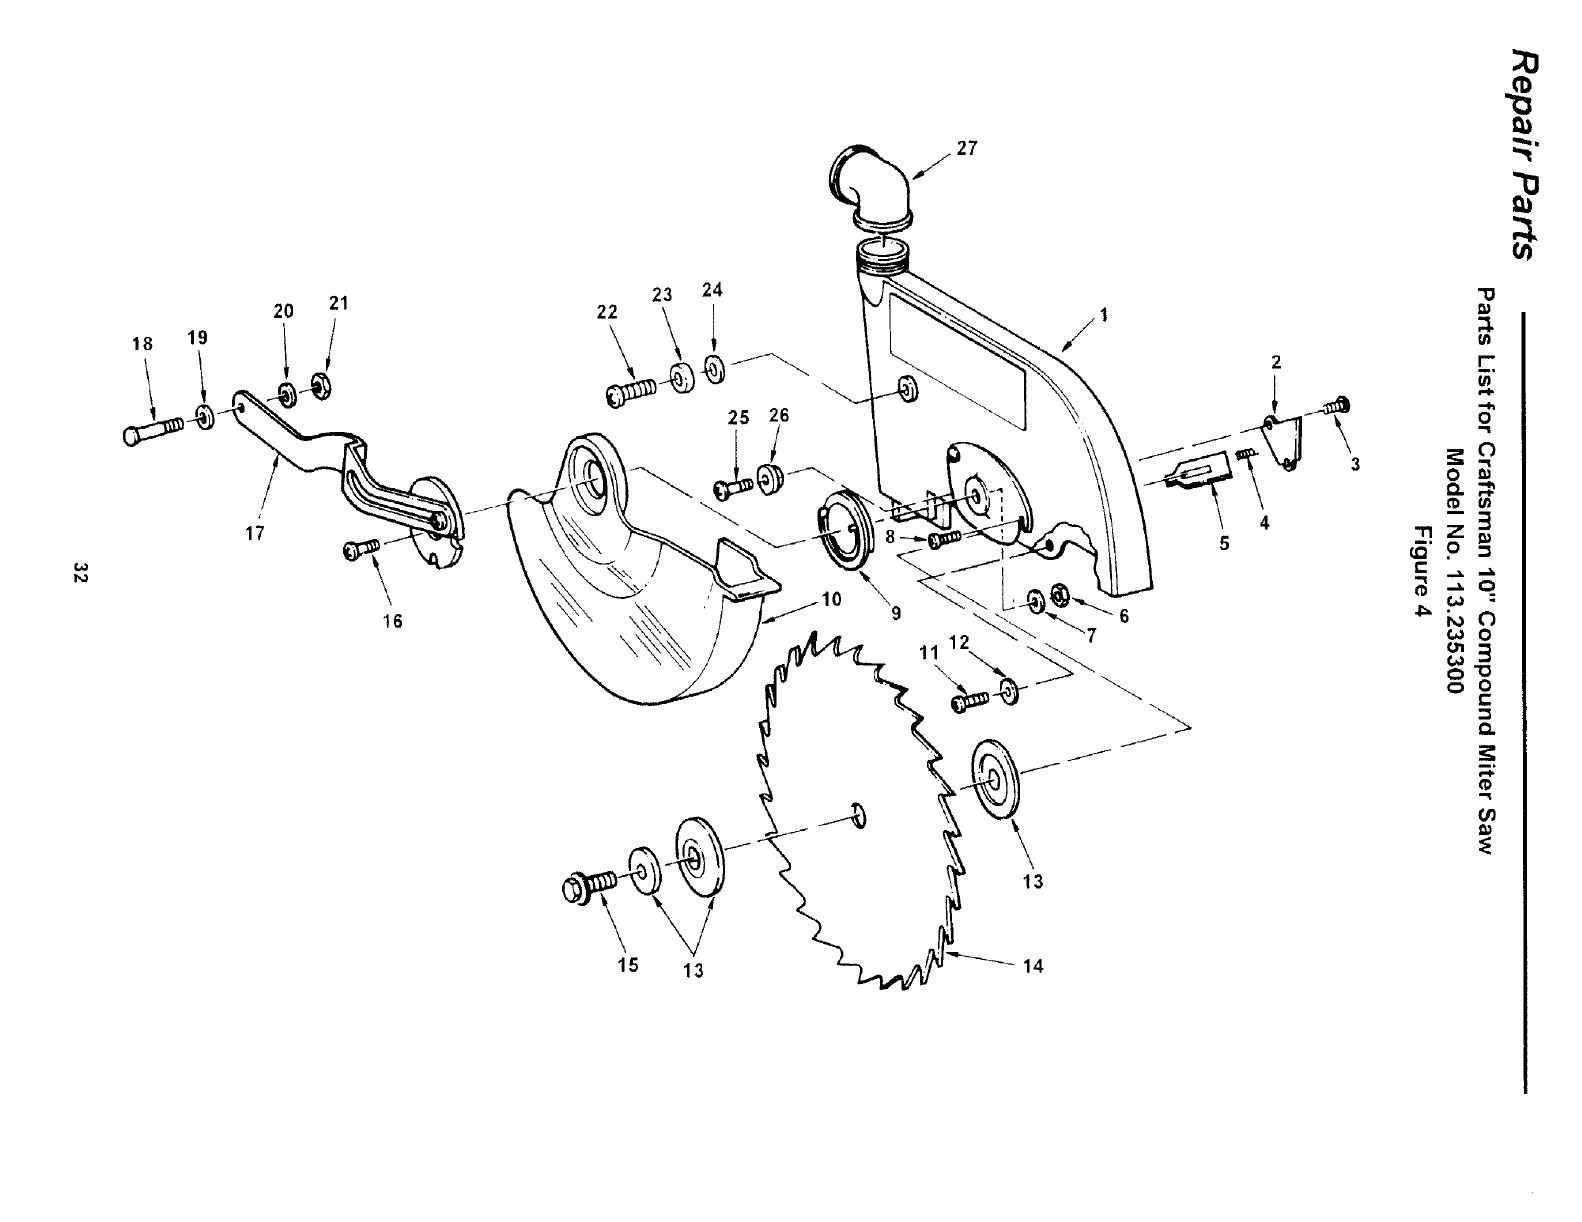 Craftsman 113235300 User Manual 10 COMPOUND MITRE SAW